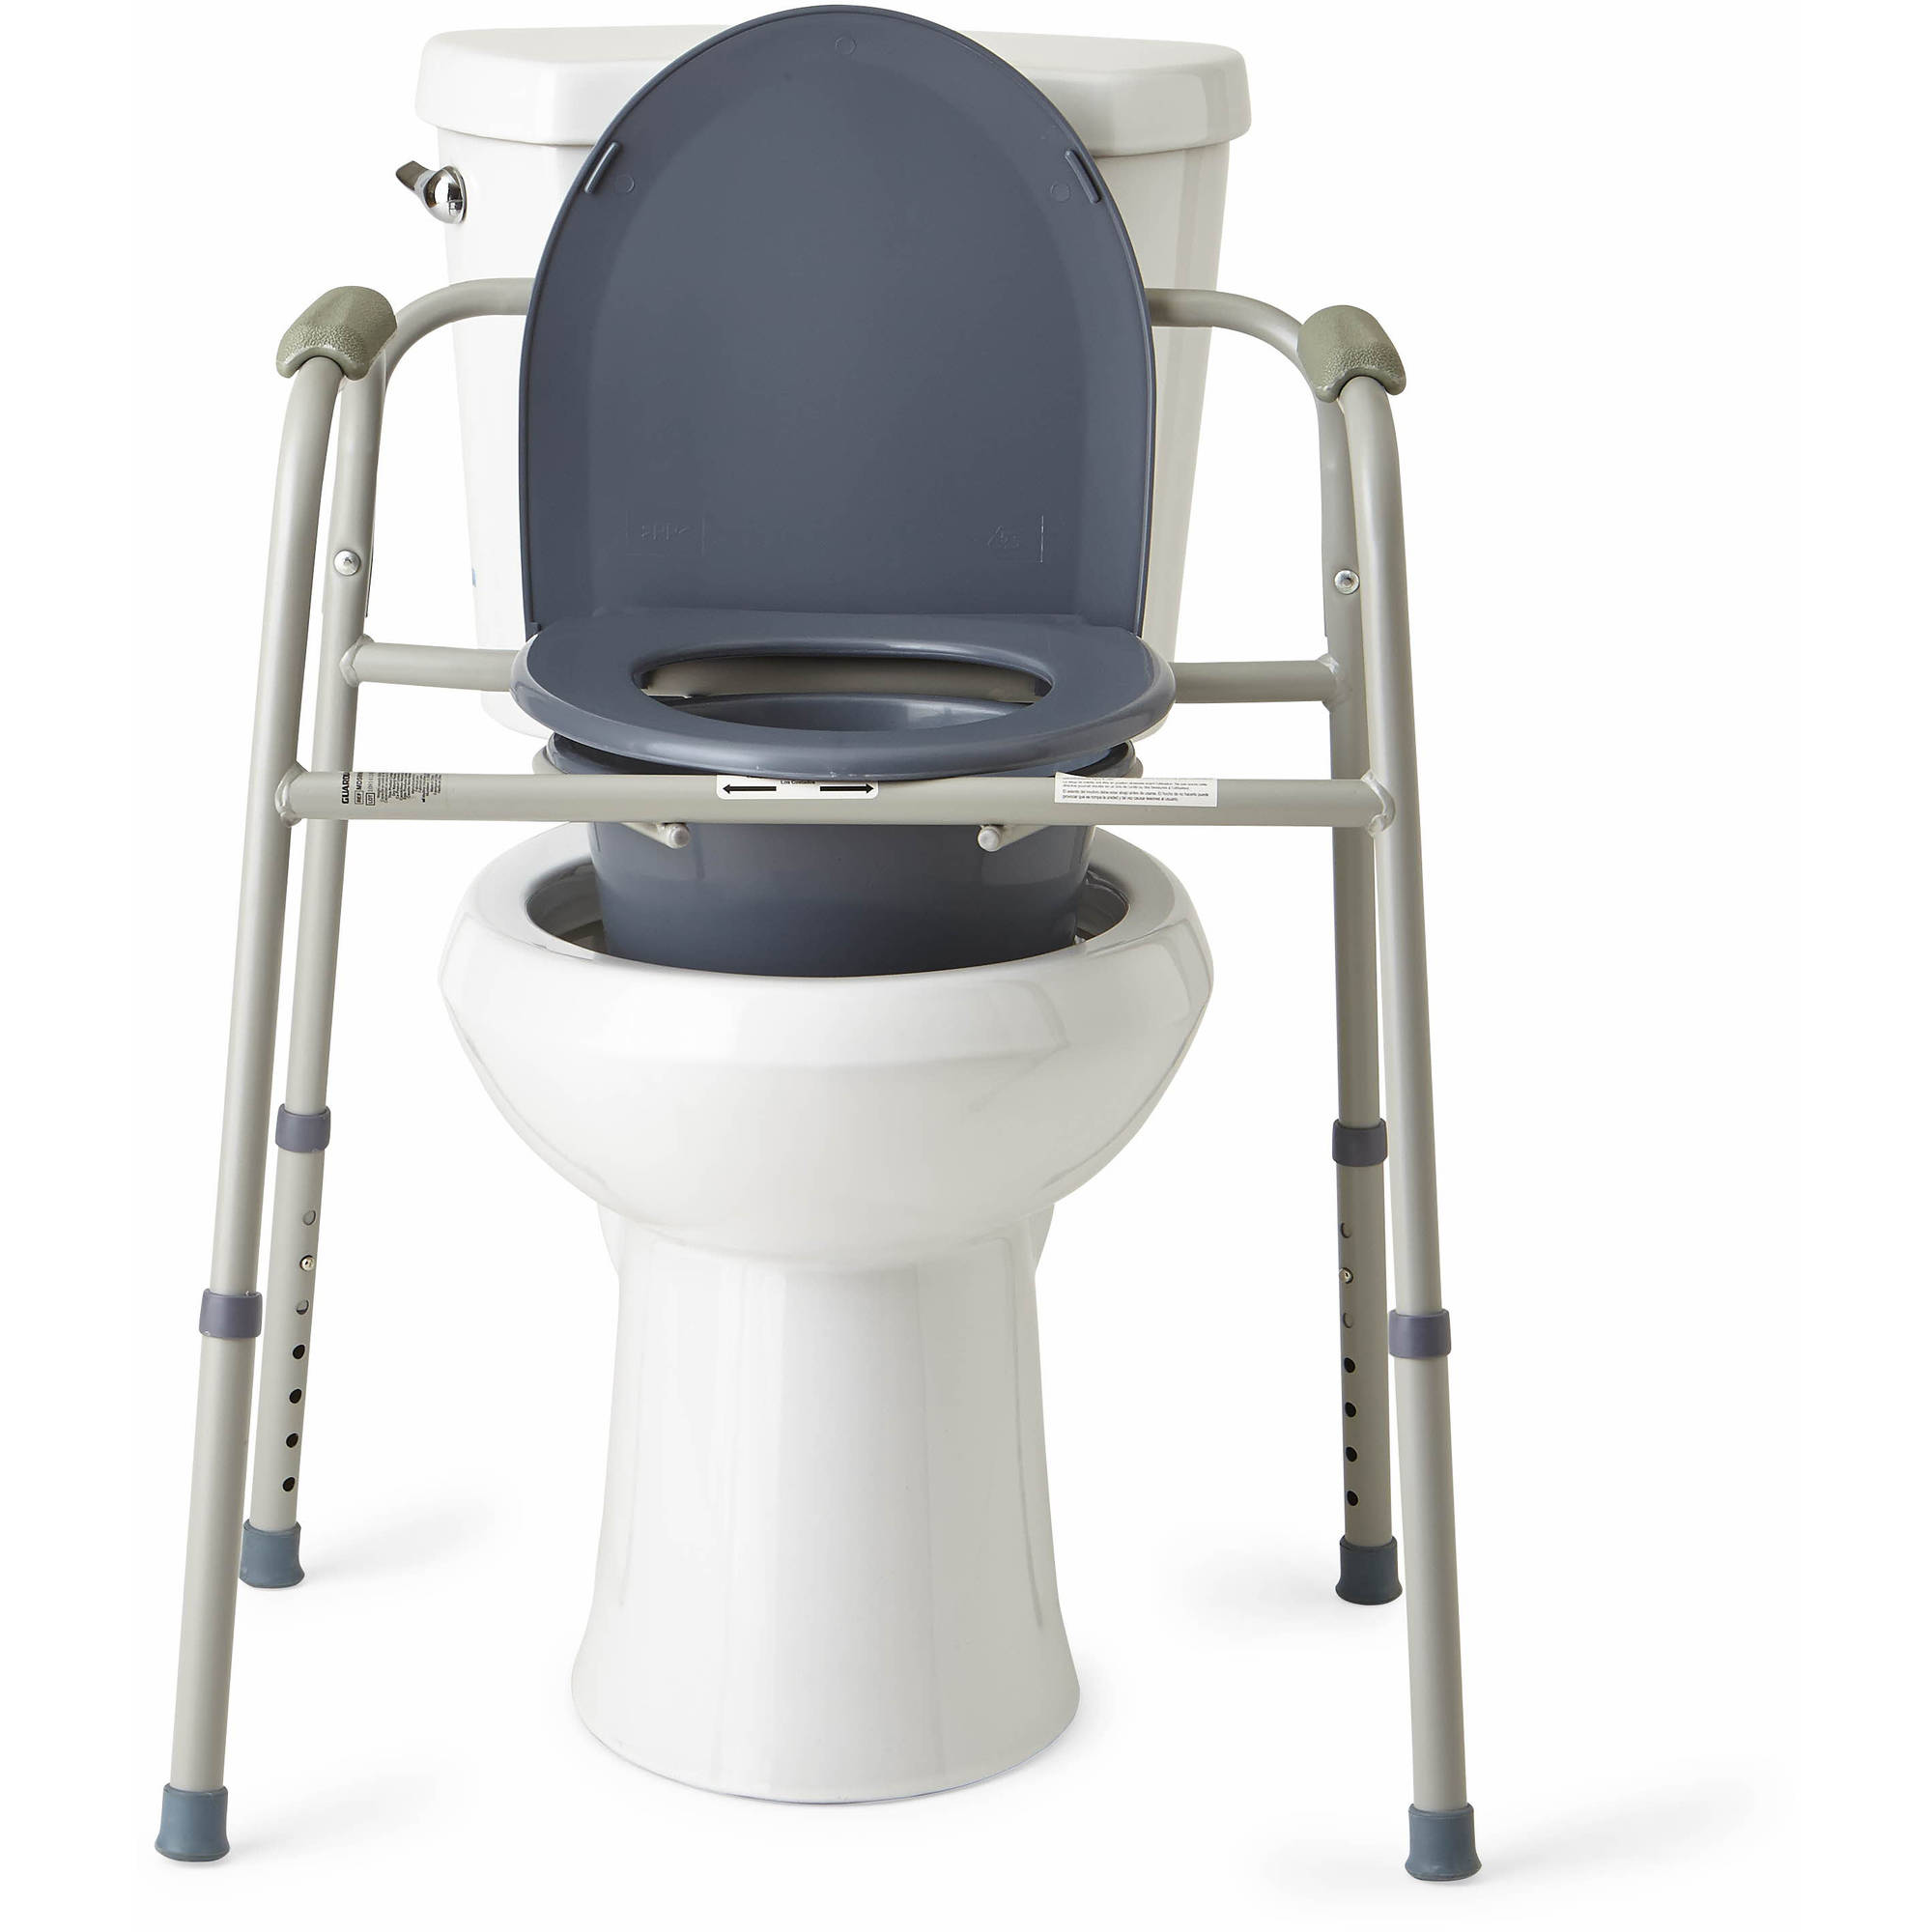 Toilets at Lowes | Bedside Commode | Commodes at Lowes